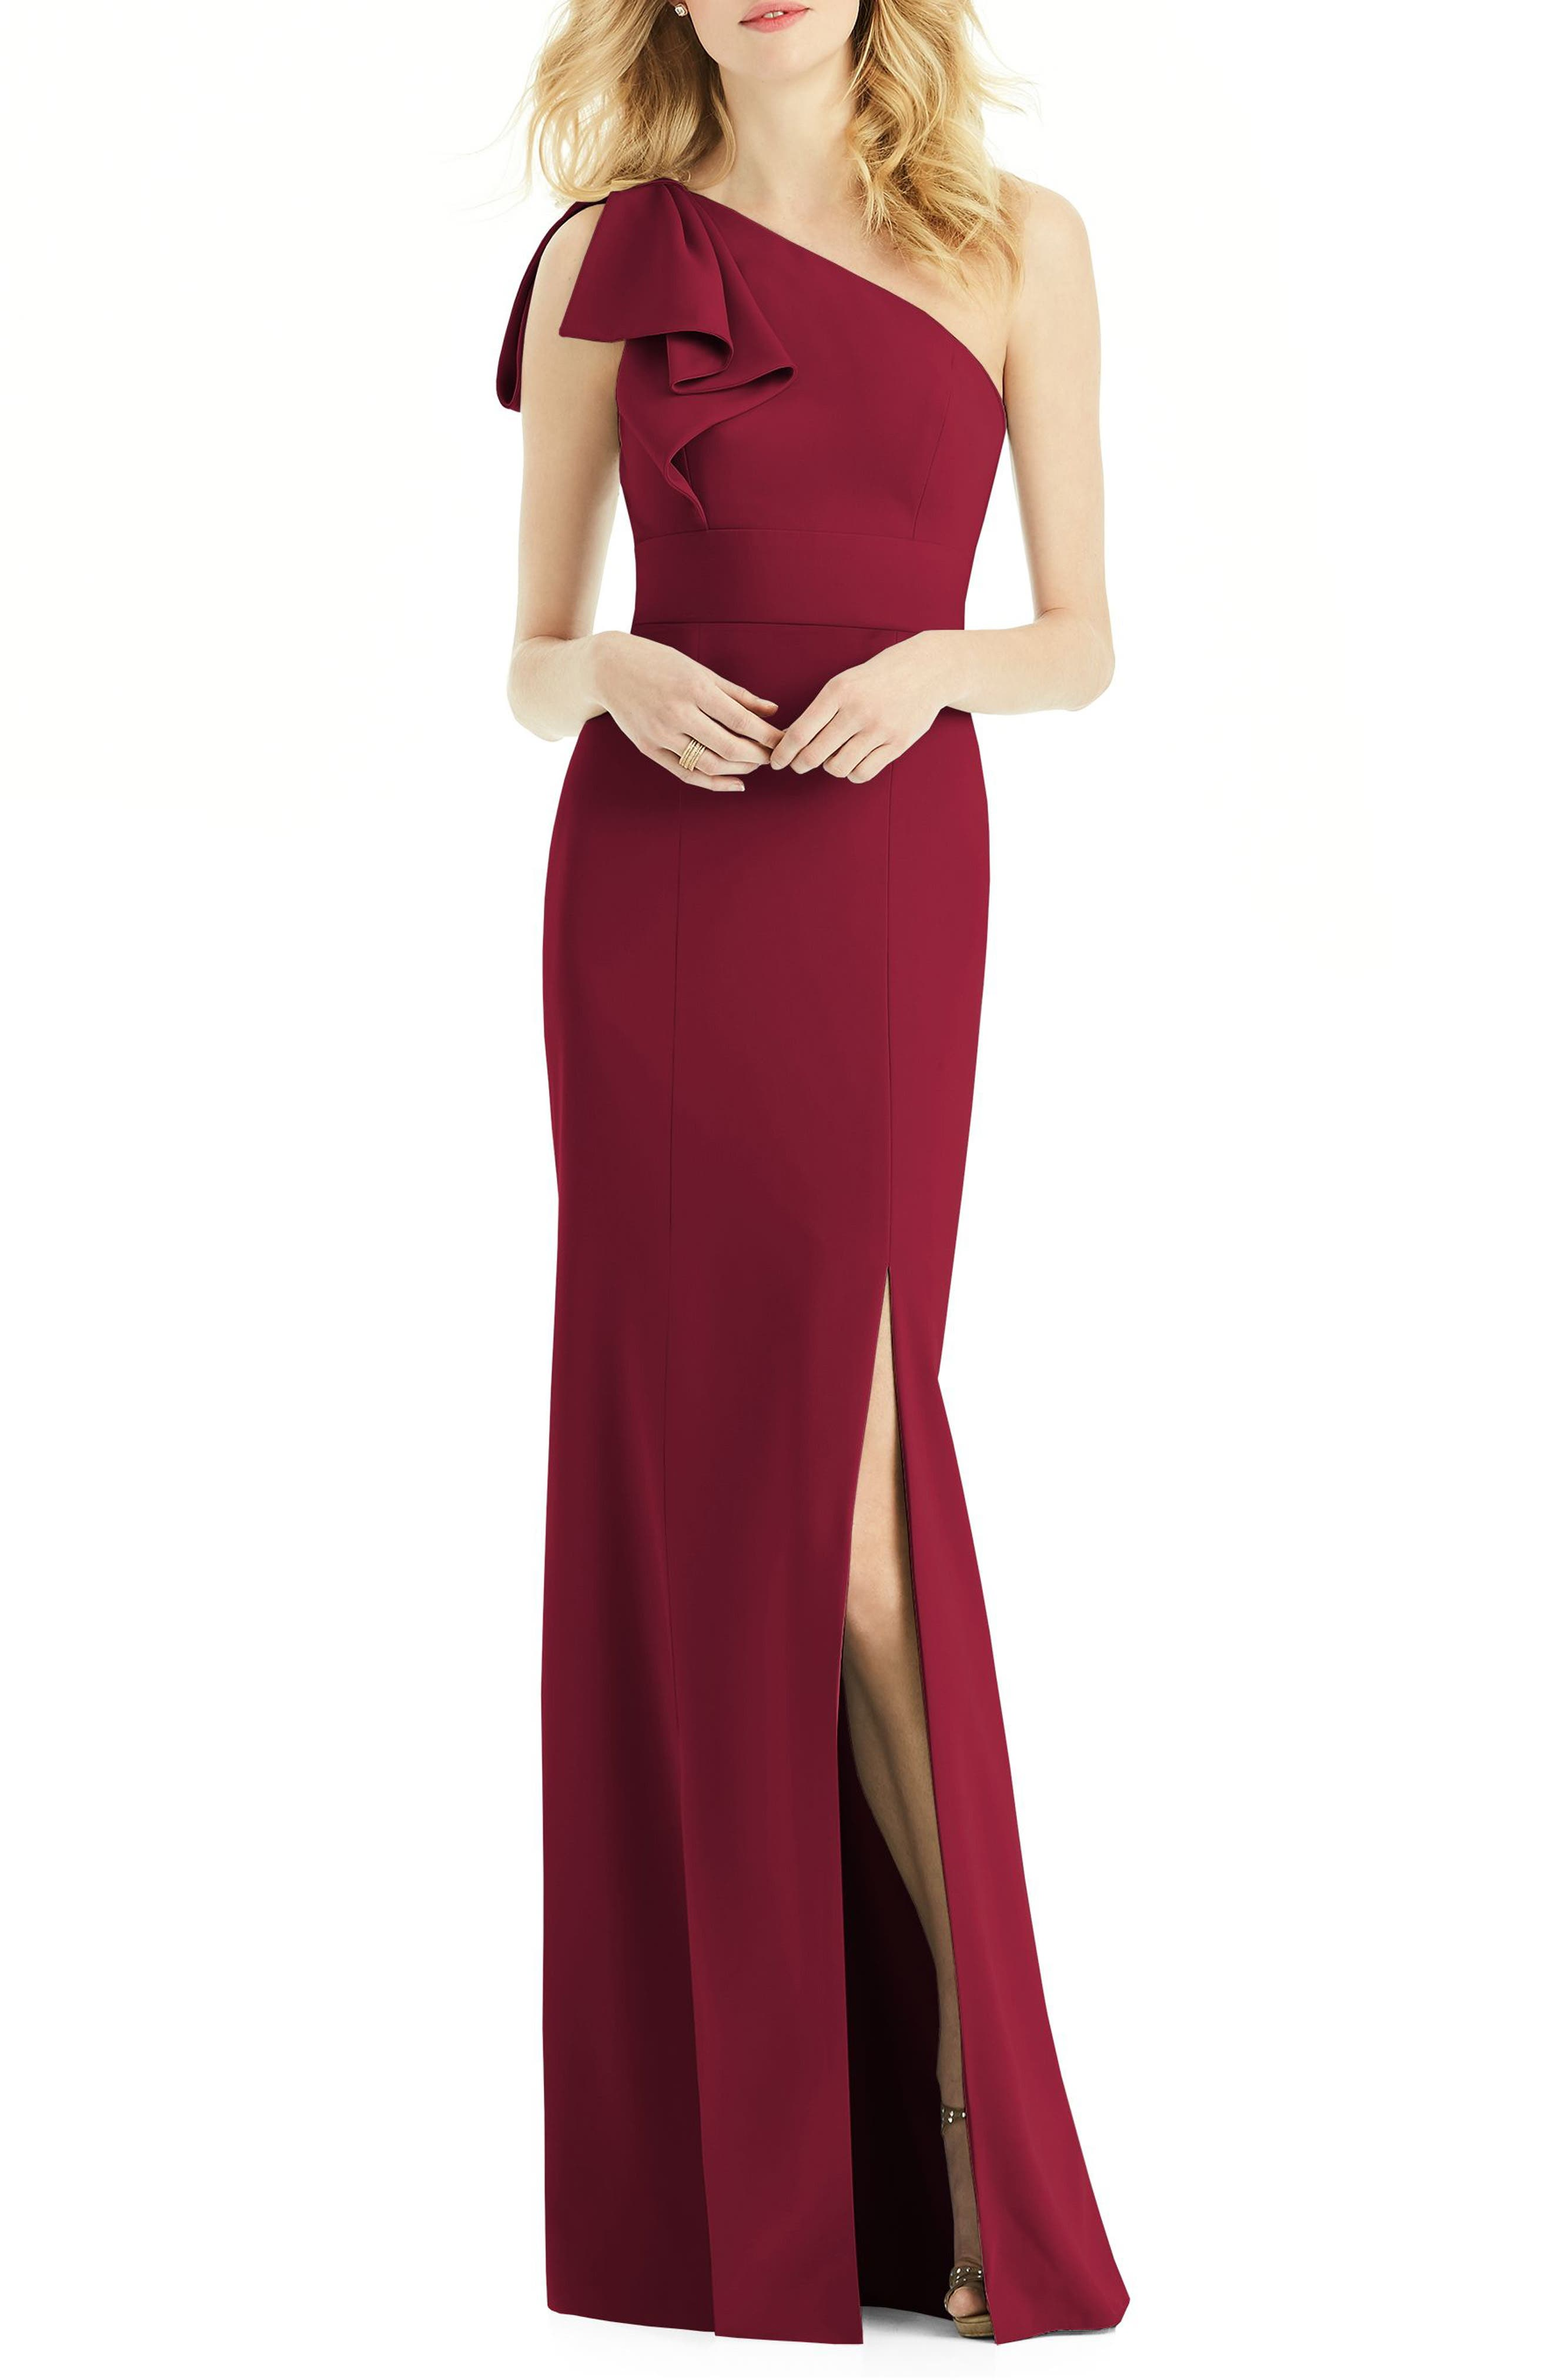 1950s Prom Dresses, Formal Dresses and Party Dresses Womens After Six Bow One-Shoulder Gown Size 10 - Burgundy $263.00 AT vintagedancer.com